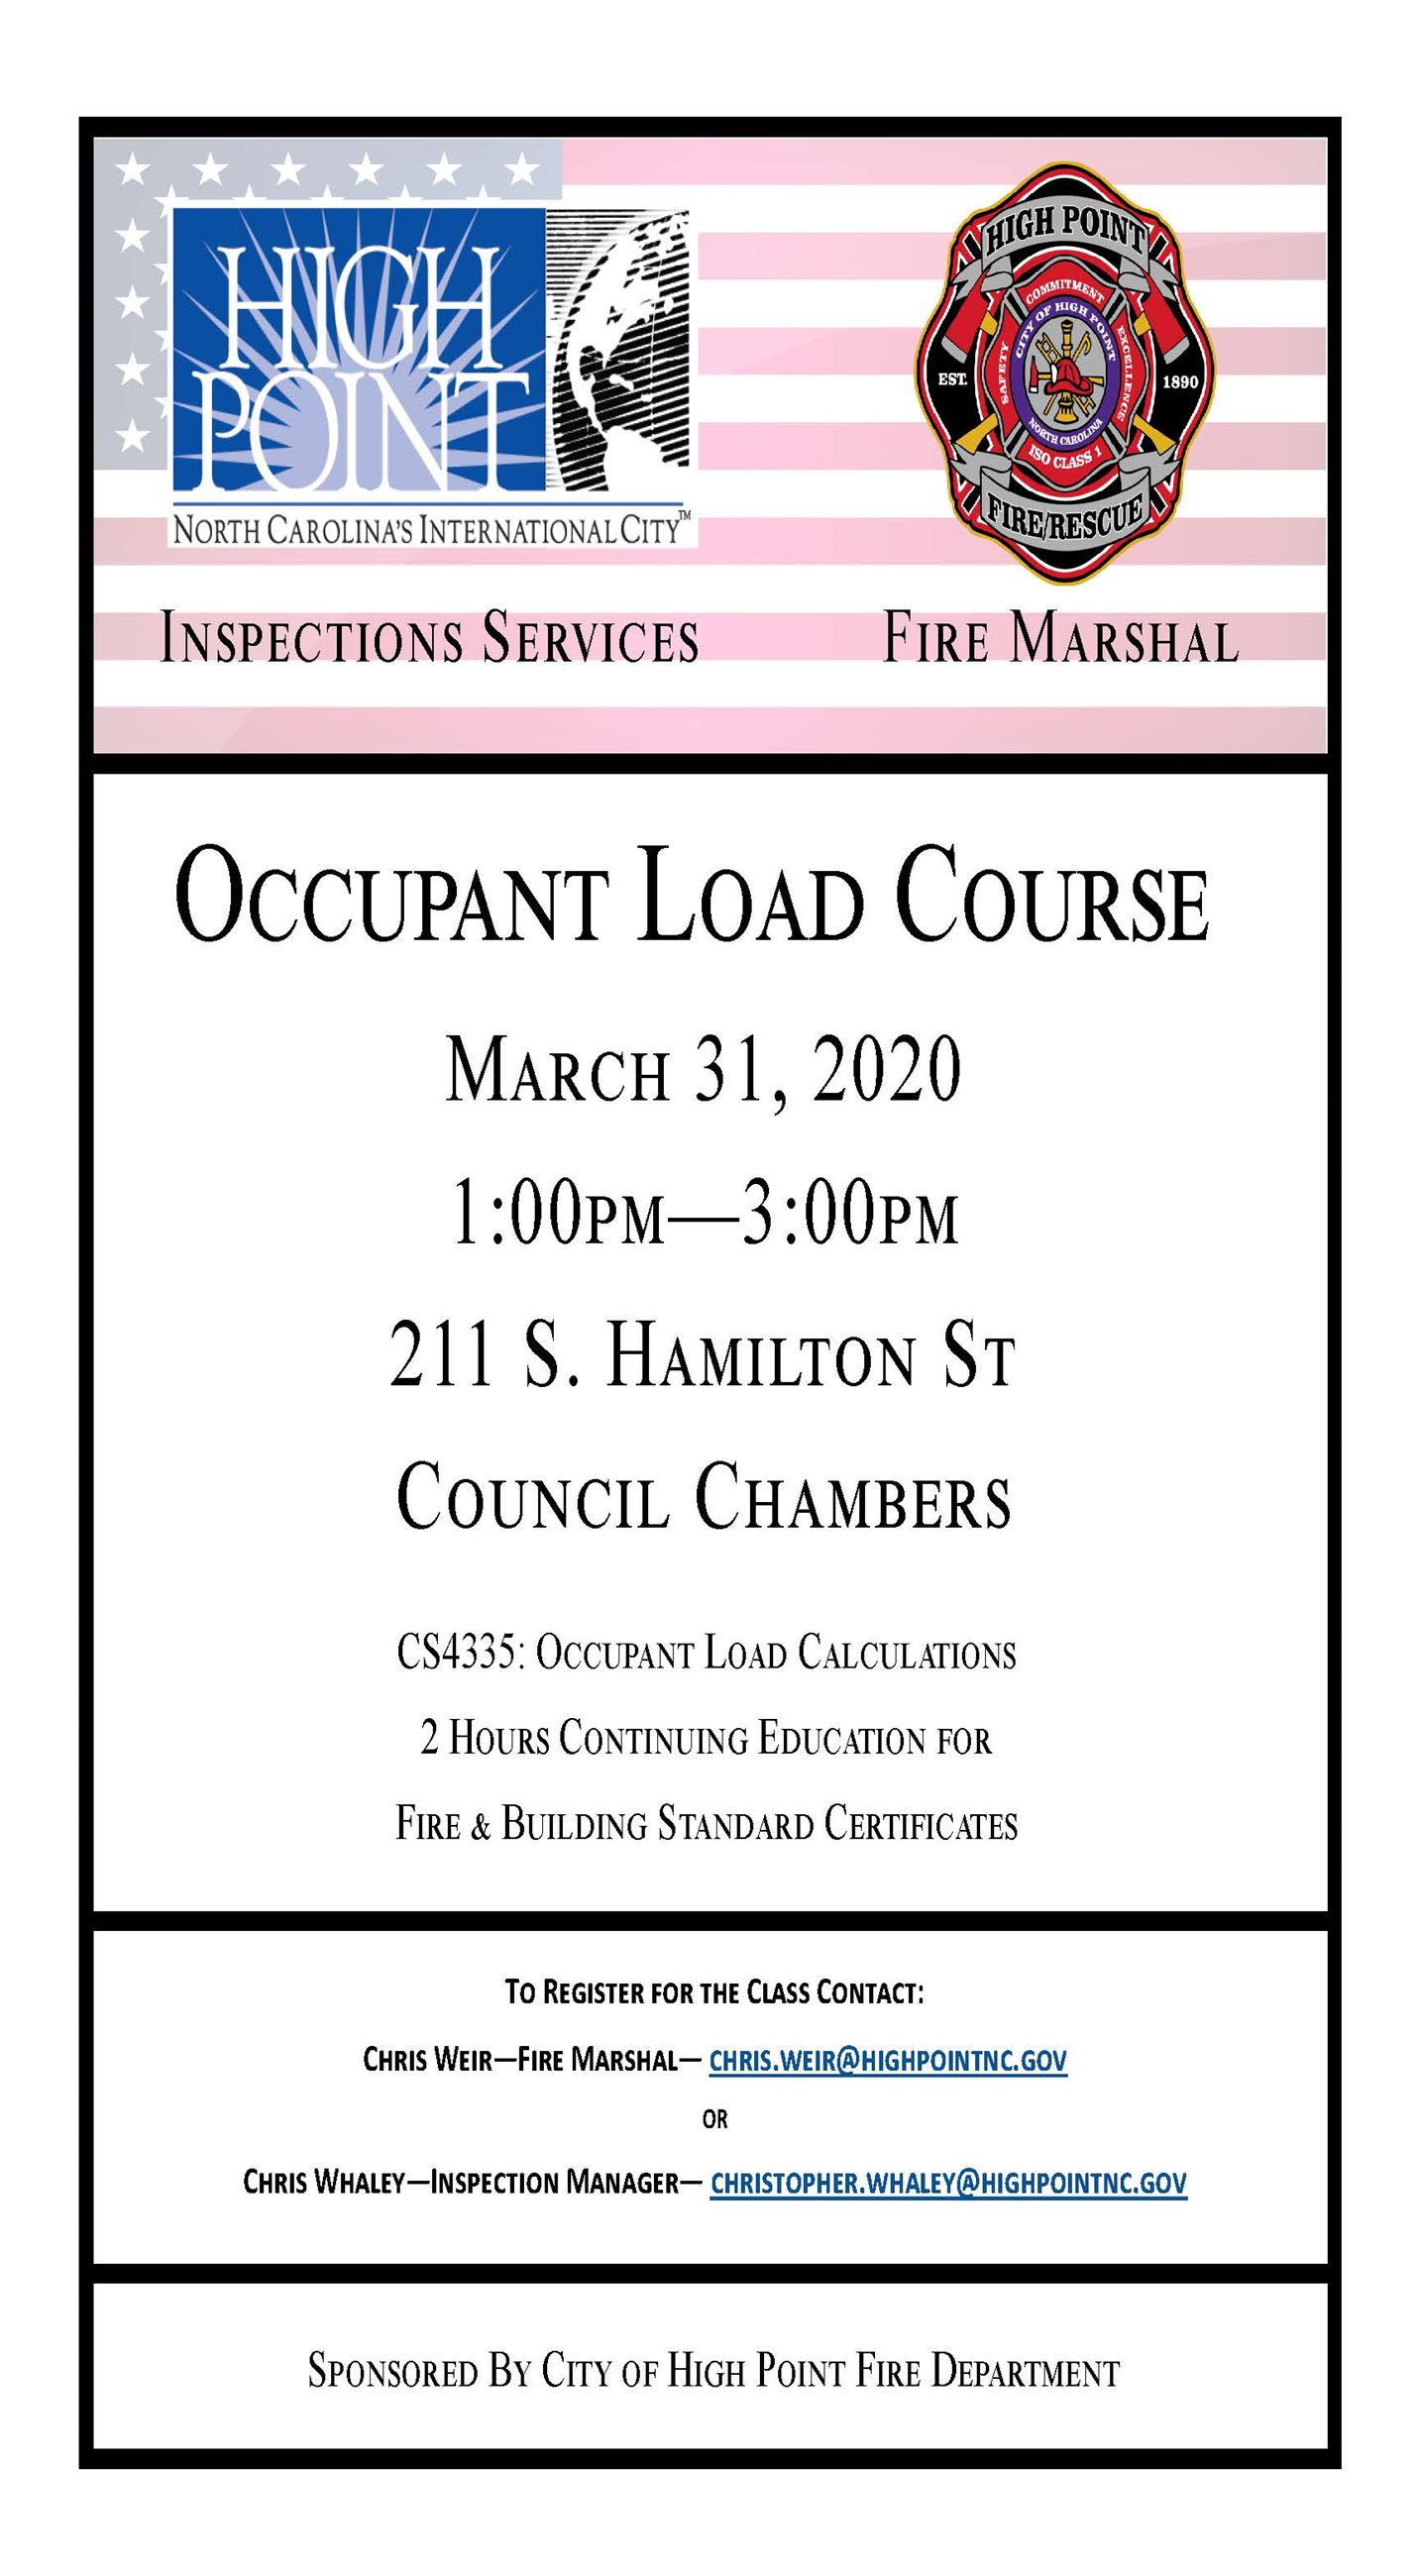 Flyer Occupant Load Course 3-31-20